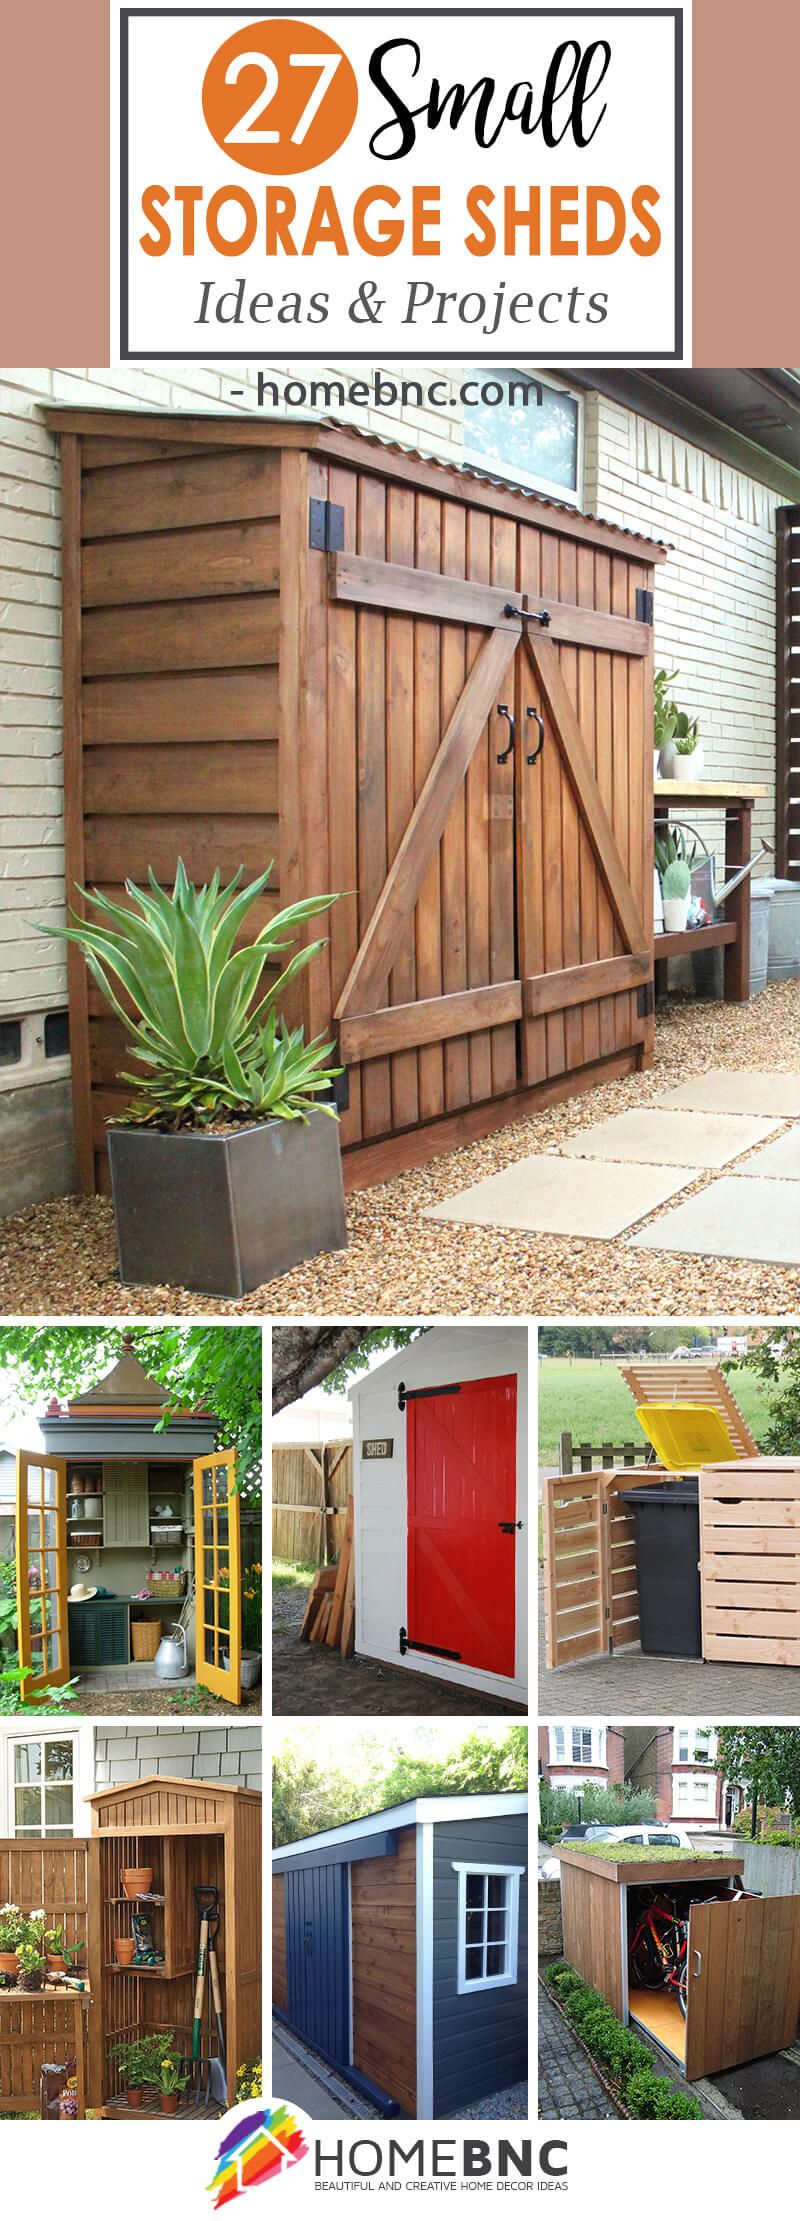 Unique Small Storage Shed Ideas For Your Garden Small Storage - Creative firewood storage ideas turning wood beautiful yard decorations